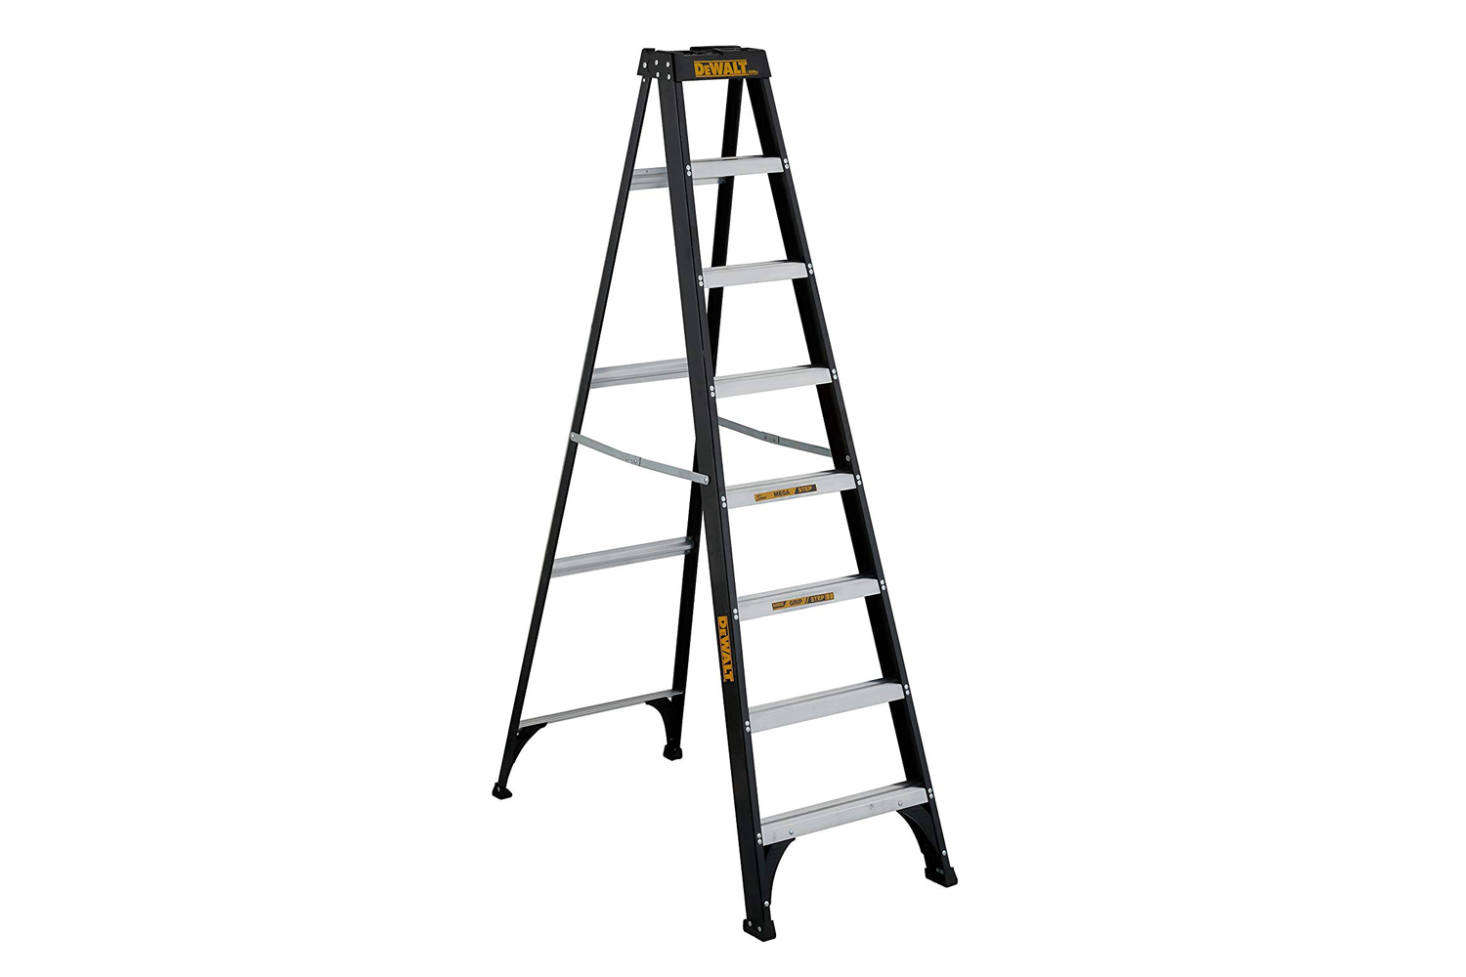 10 Easy Pieces Mid Size Utility Ladders Gardenista